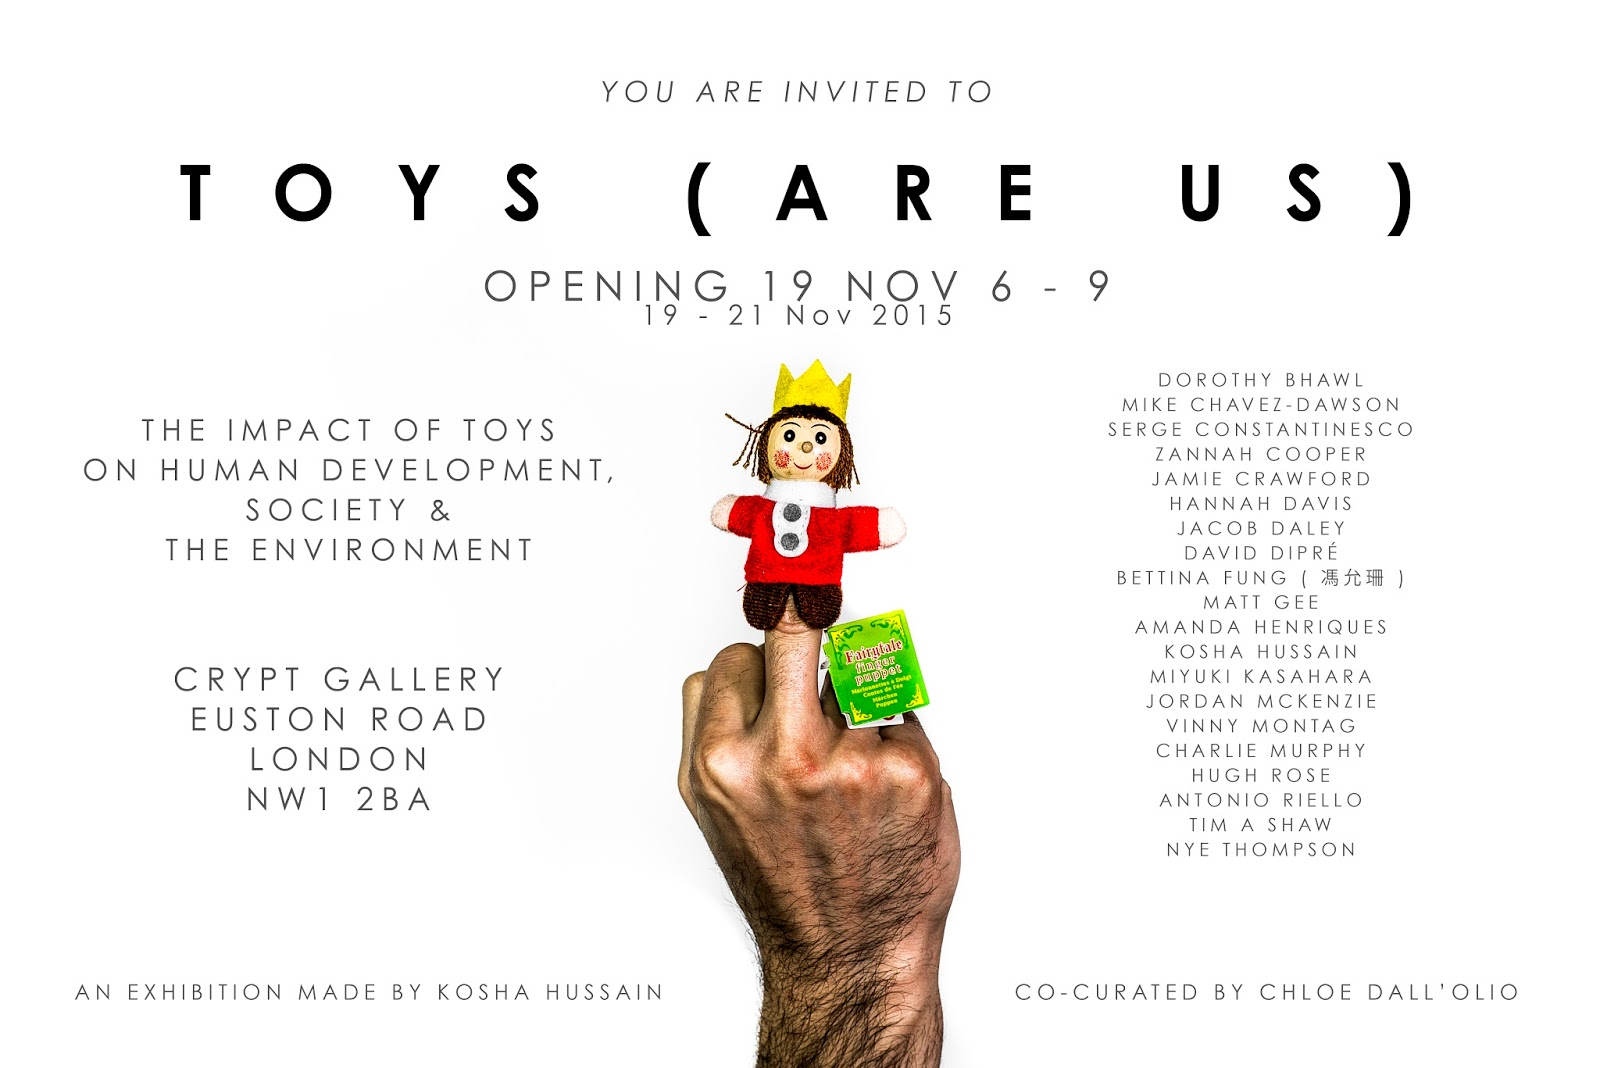 wayne chisnall s artwork toys are us as kosha explains on his tumbler page when choosing the right photo for the flier the concept behind the image is a homage to the short essay that